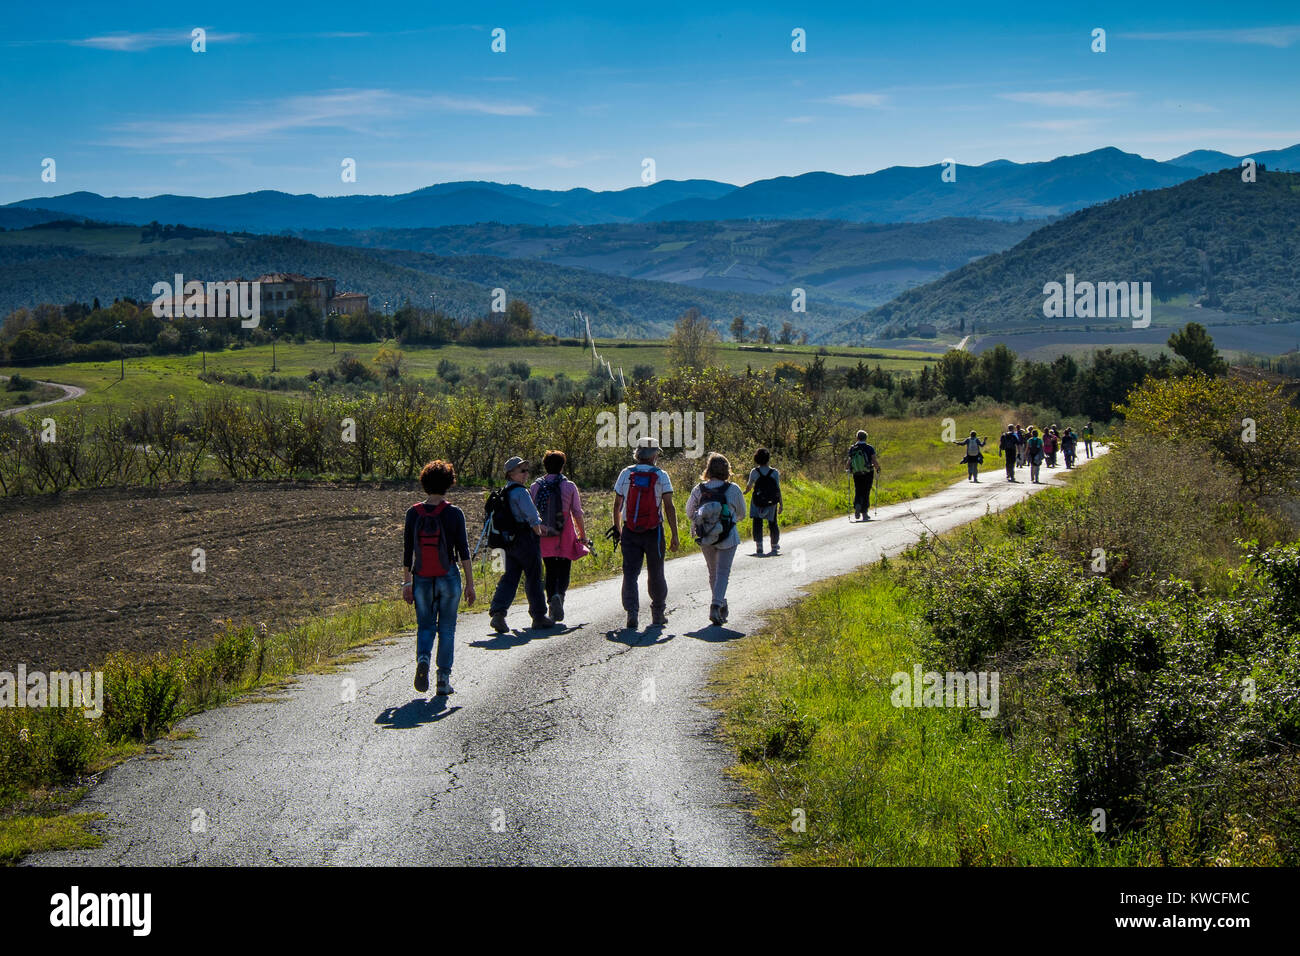 Volterra, Pisa, Italy - November 1, 2017: Hikers depart from Saline for the Volterra hills with panoramic views - Stock Image